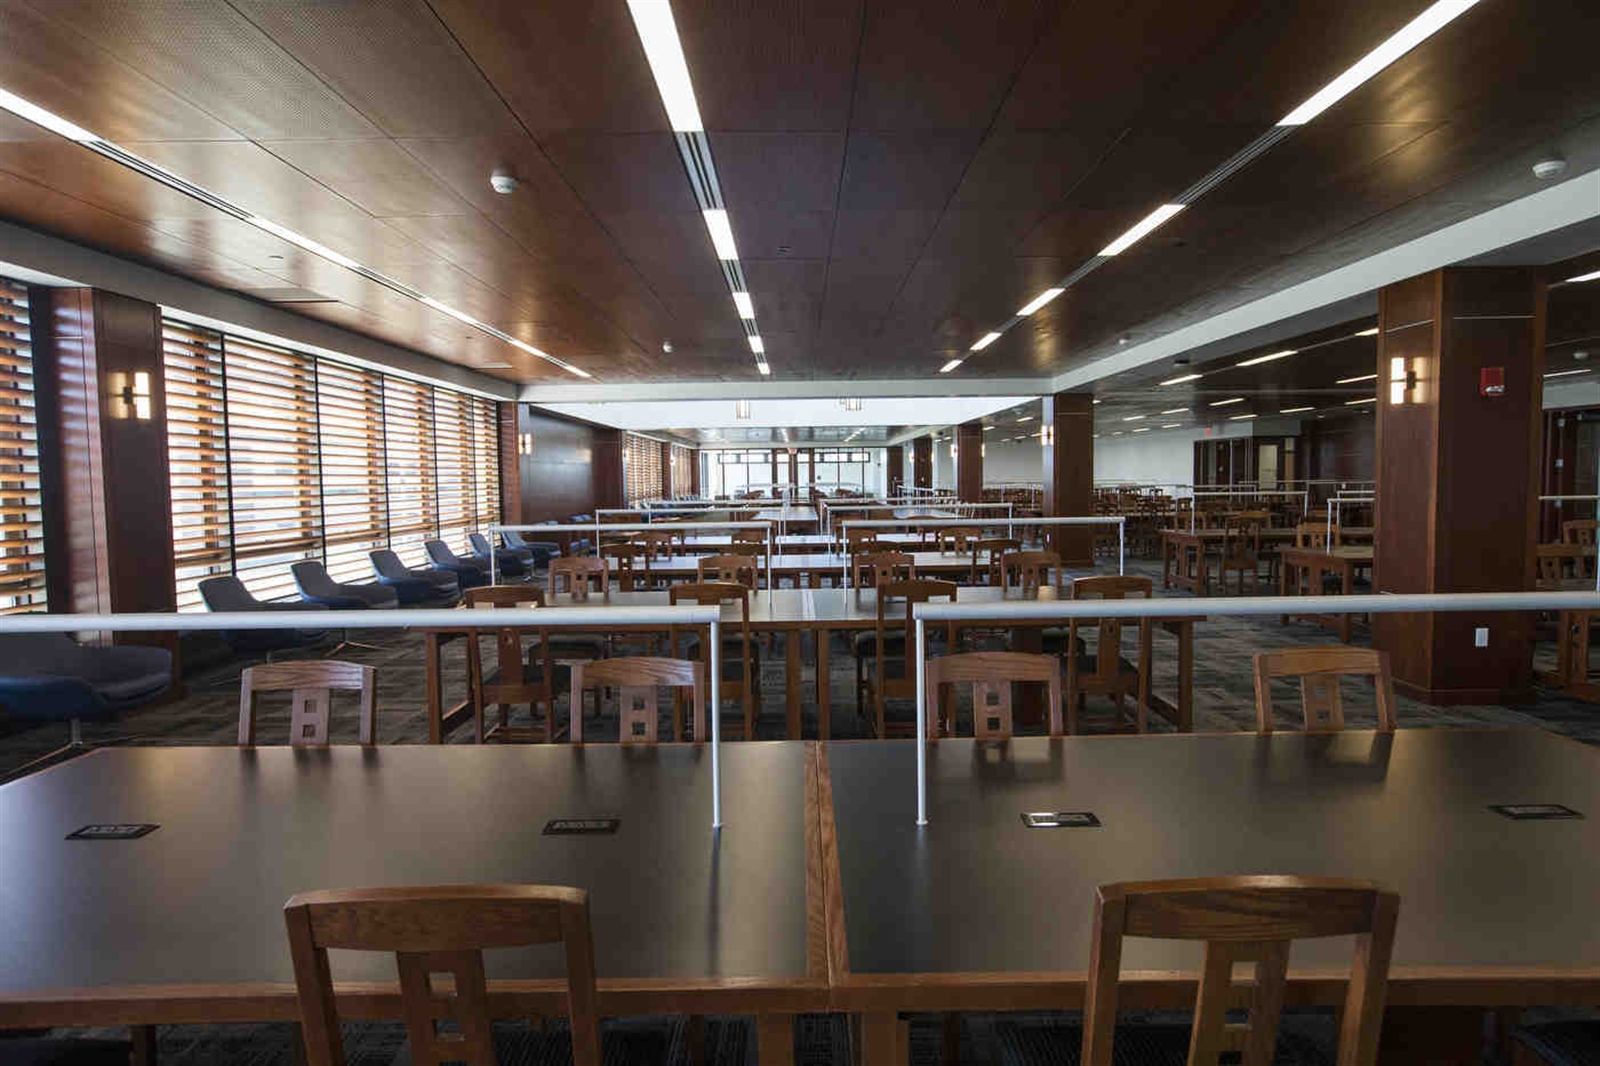 The Grand Reading Room in the newly renovated Silverman Library on UB's North Campus where power outlets have replaced bound books. A $7.2 million makeover has transformed the library for a digital age.